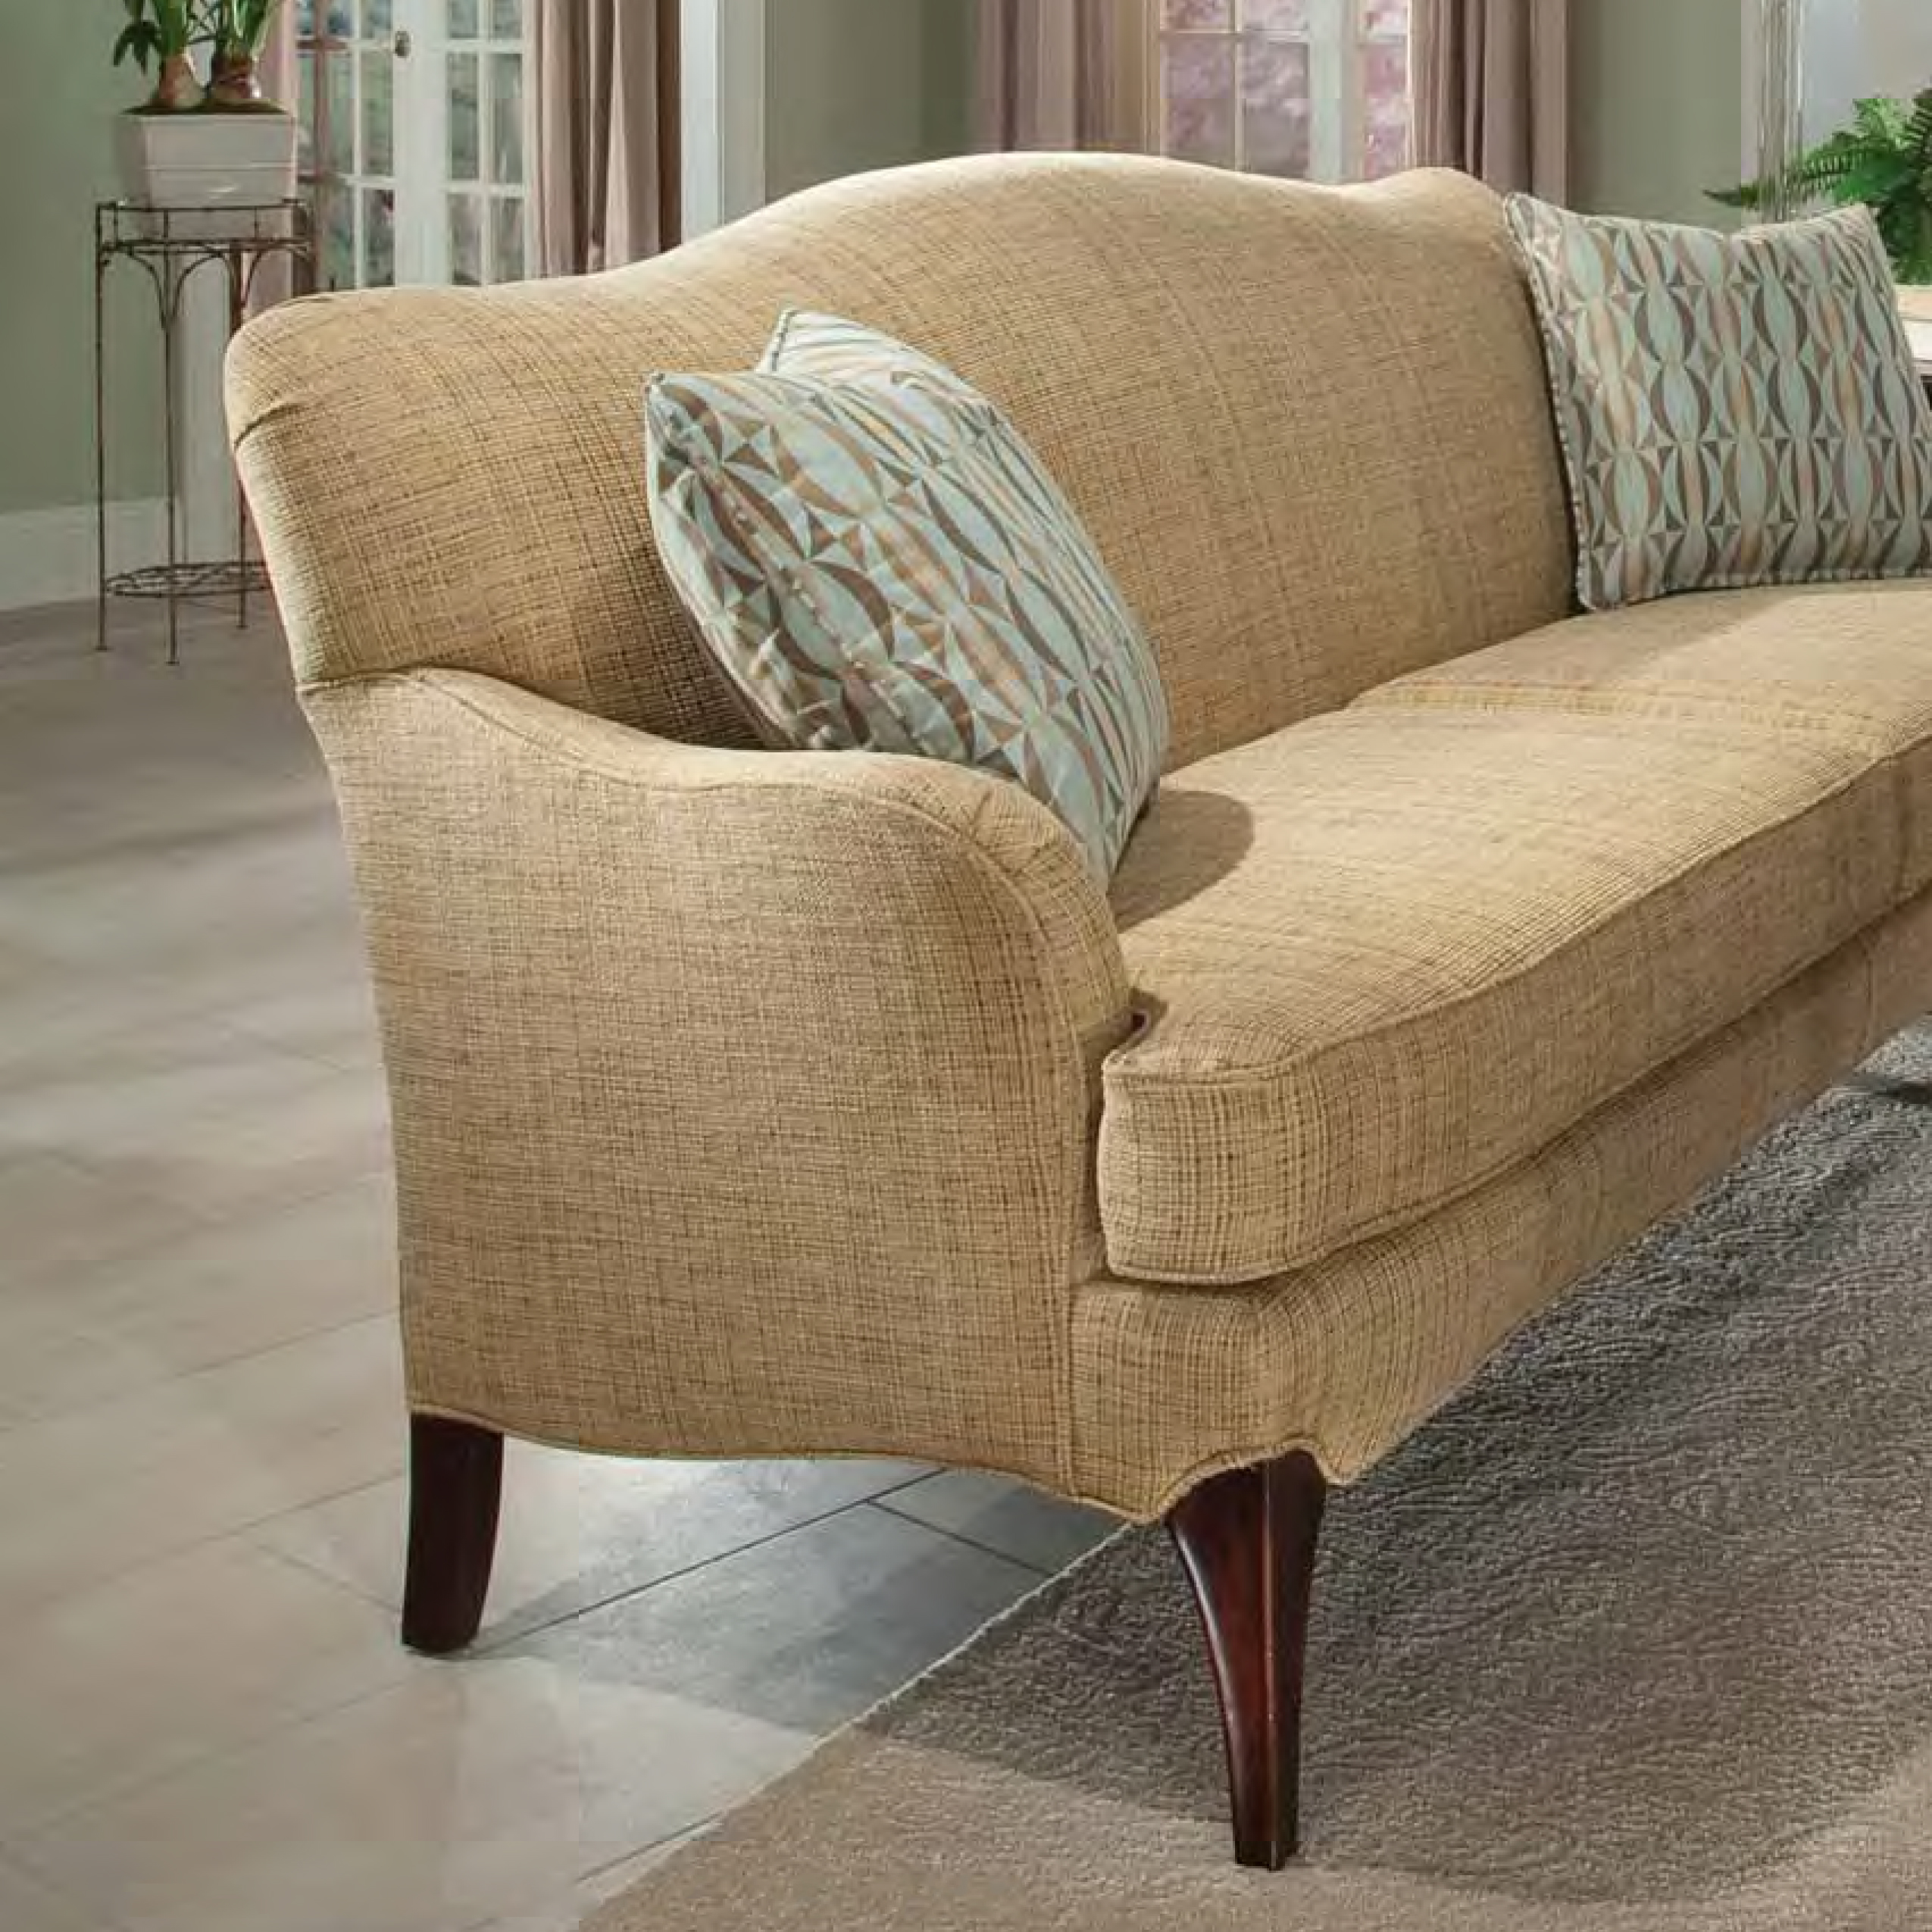 Online Home Furnishing Sites: First Online E-Commerce Site To Offer Senior Living